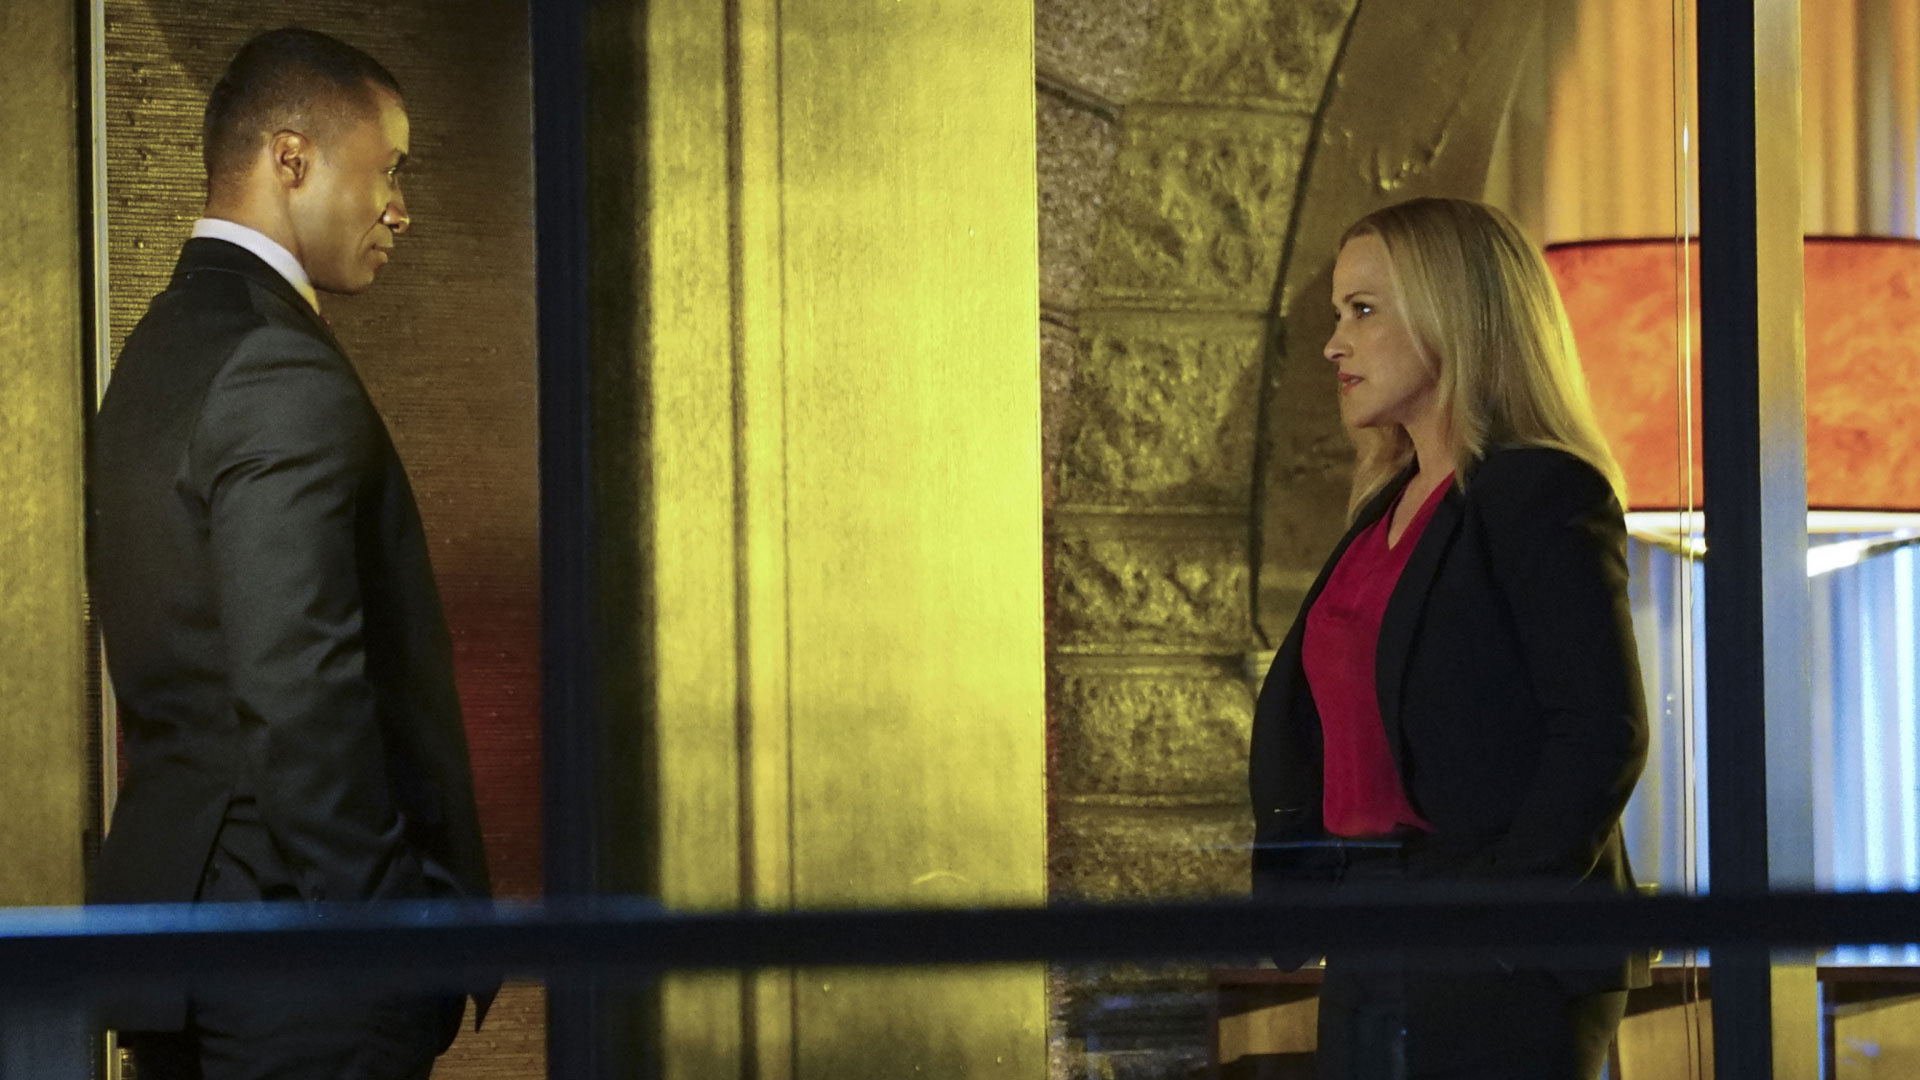 Sean Blakemore as FBI Director Silver and Patricia Arquette as Avery Ryan